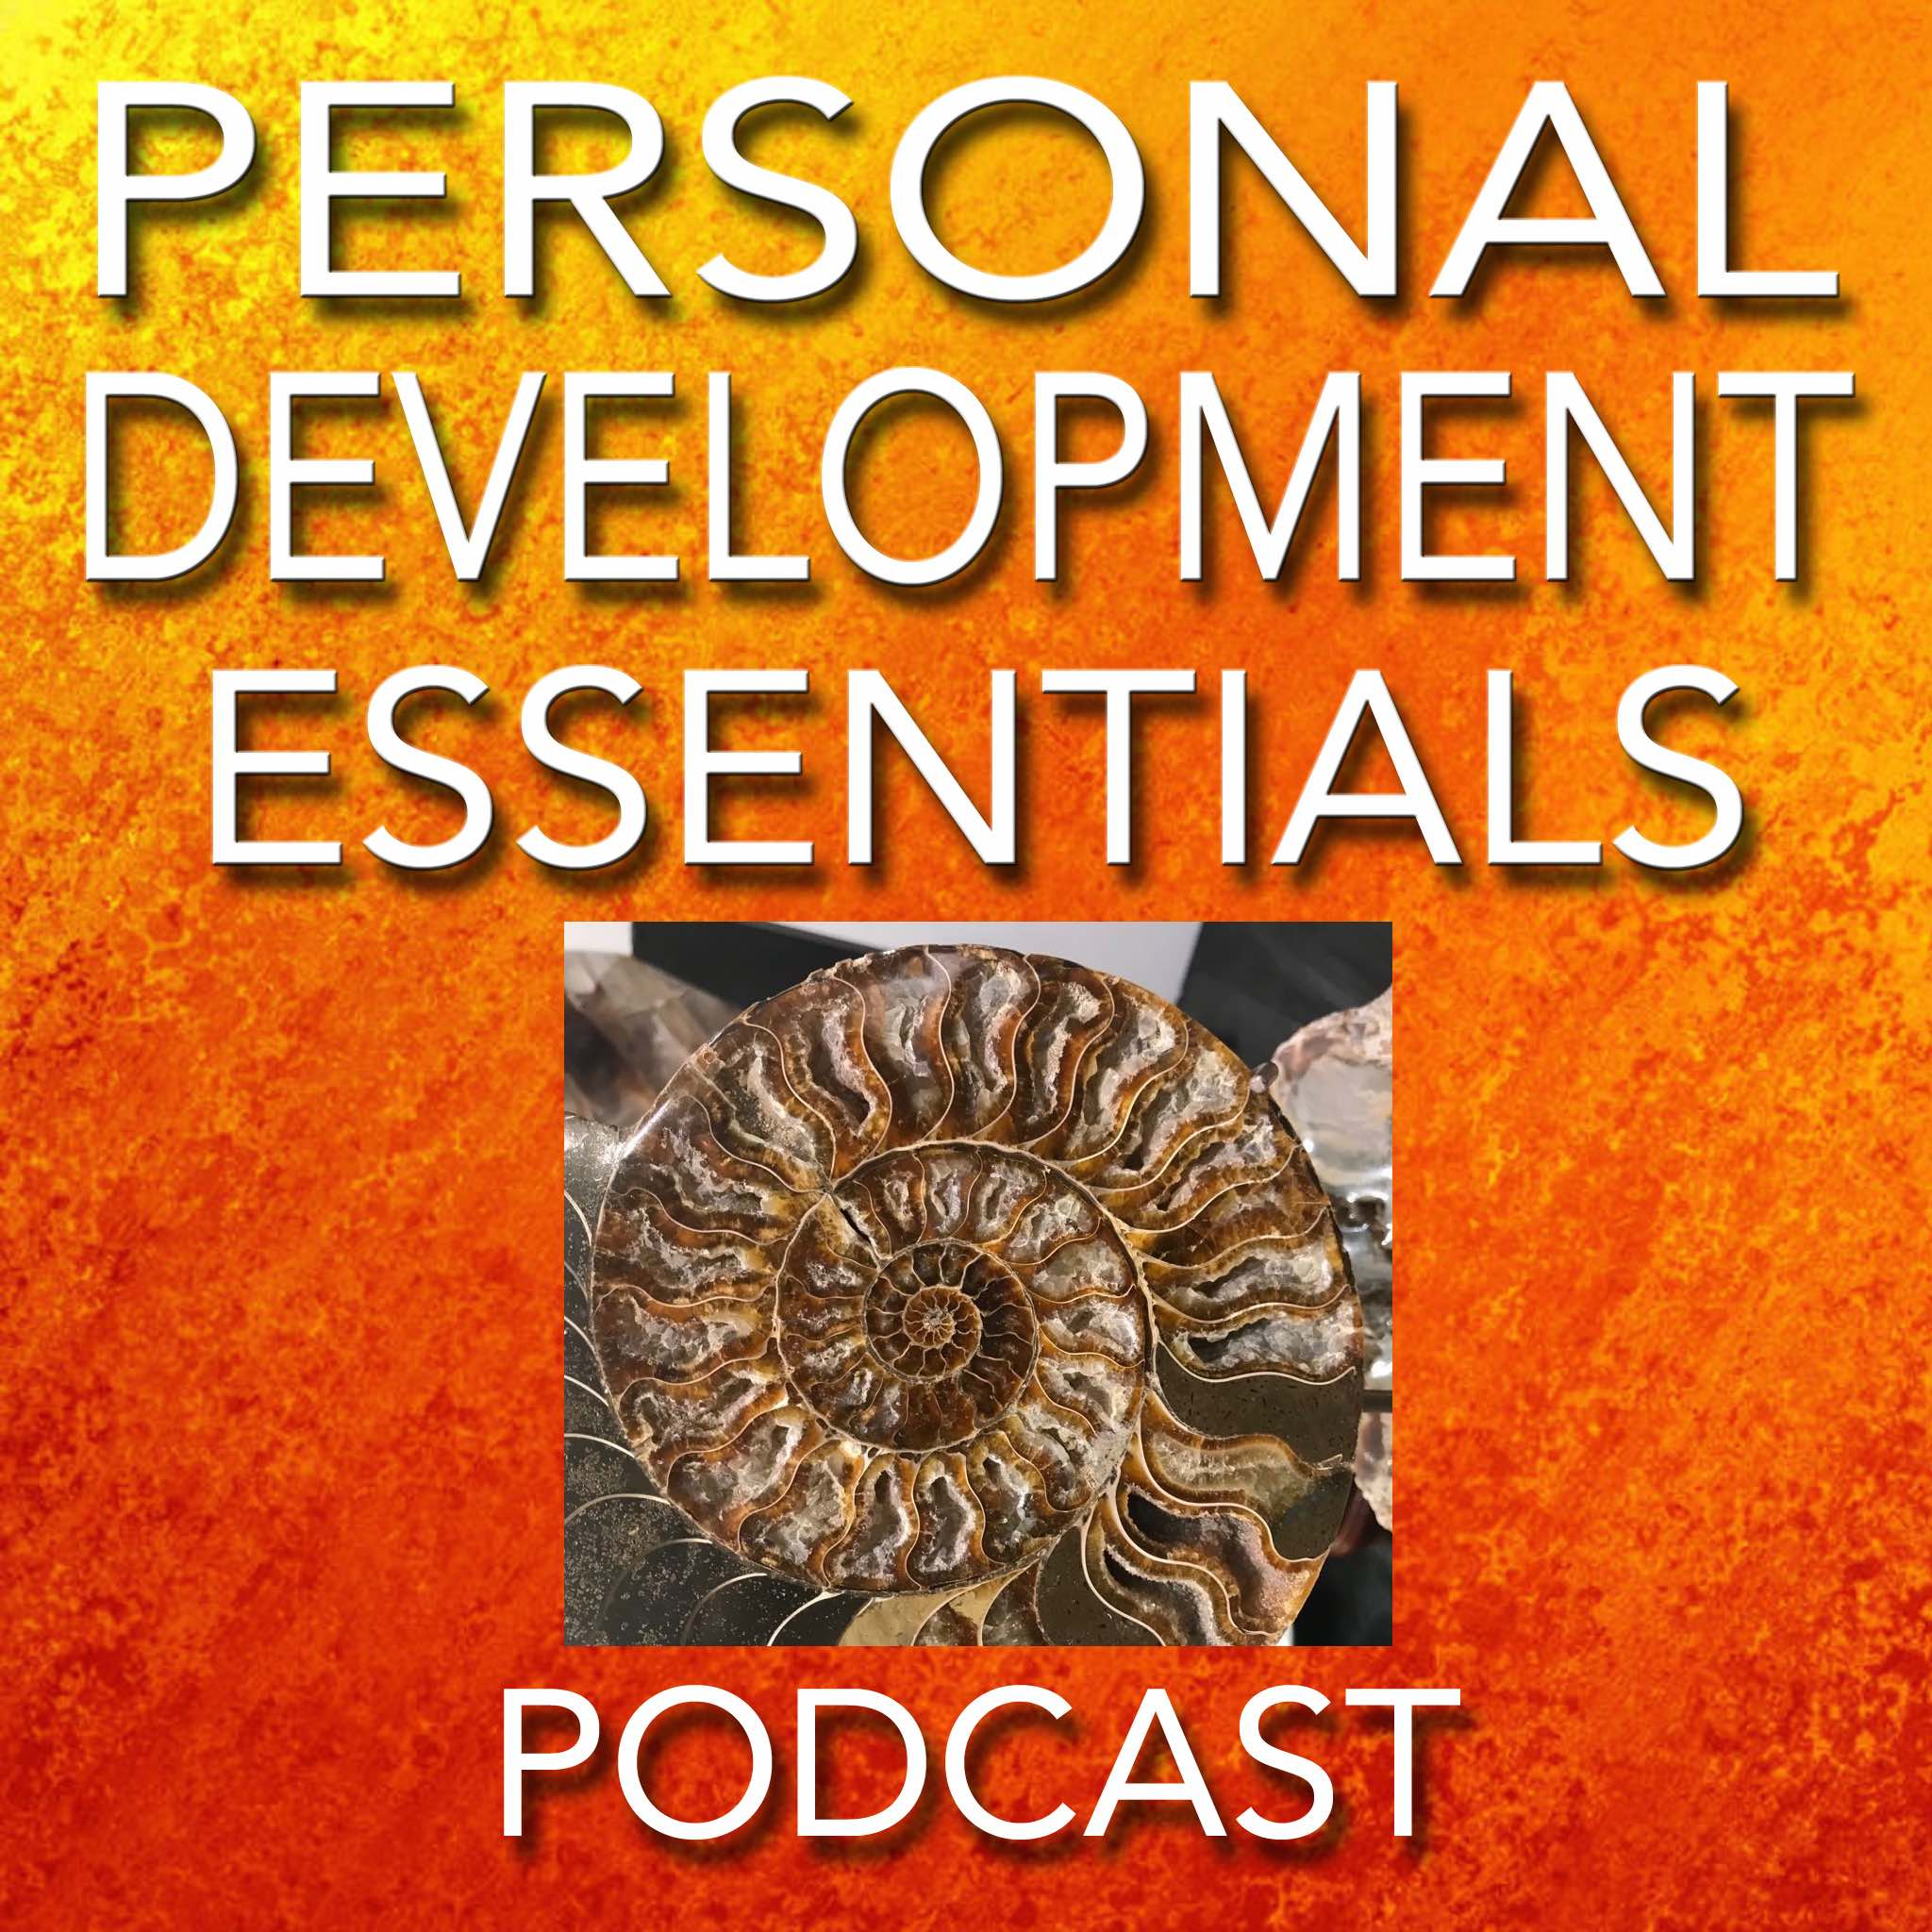 Personal Development Essentials show art